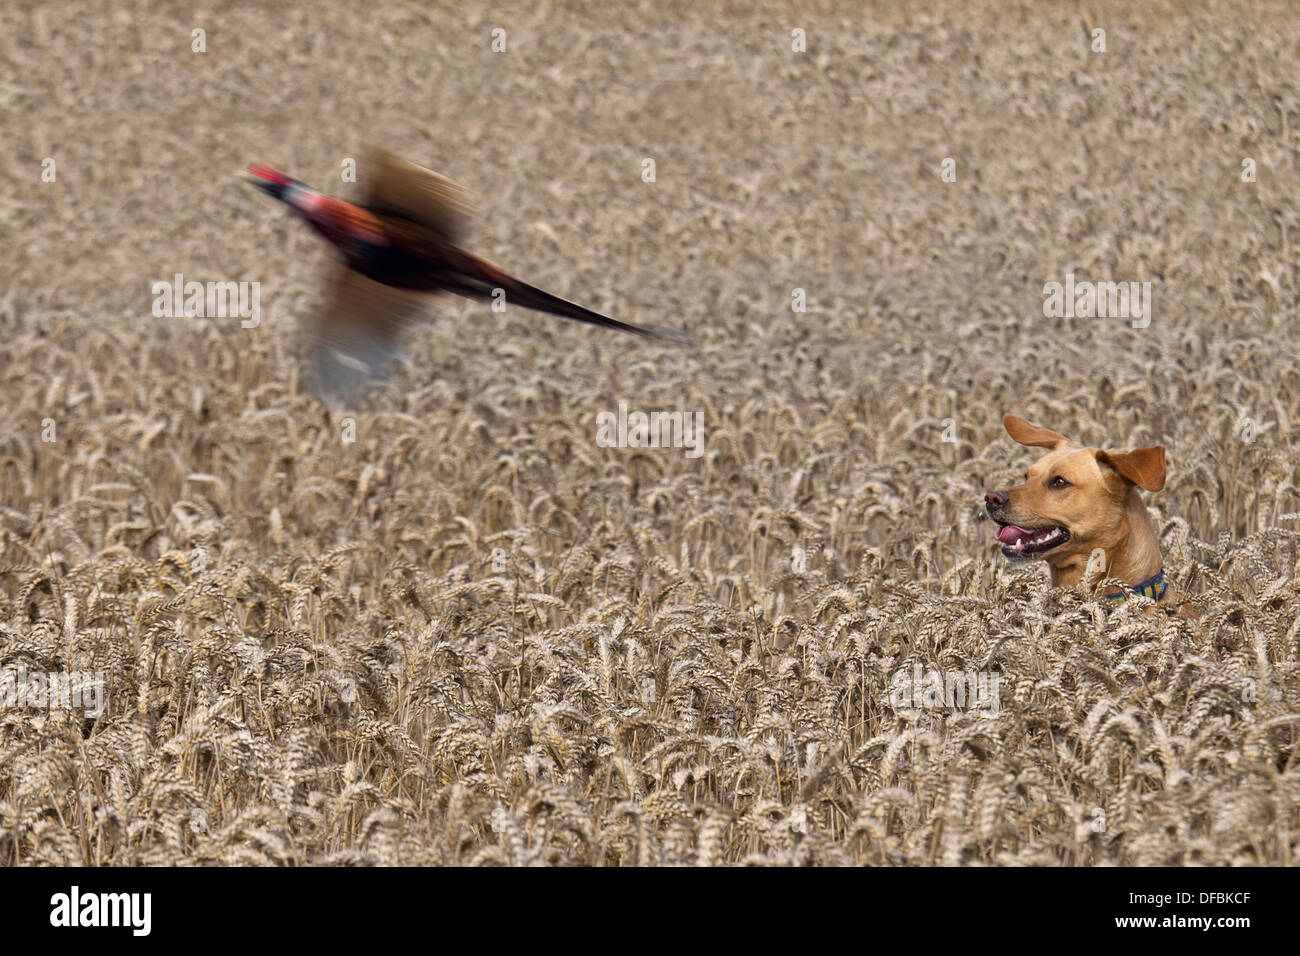 Yellow Labrador hunting pheasants in Wheat crop at Harvest time Norfolk August - Stock Image